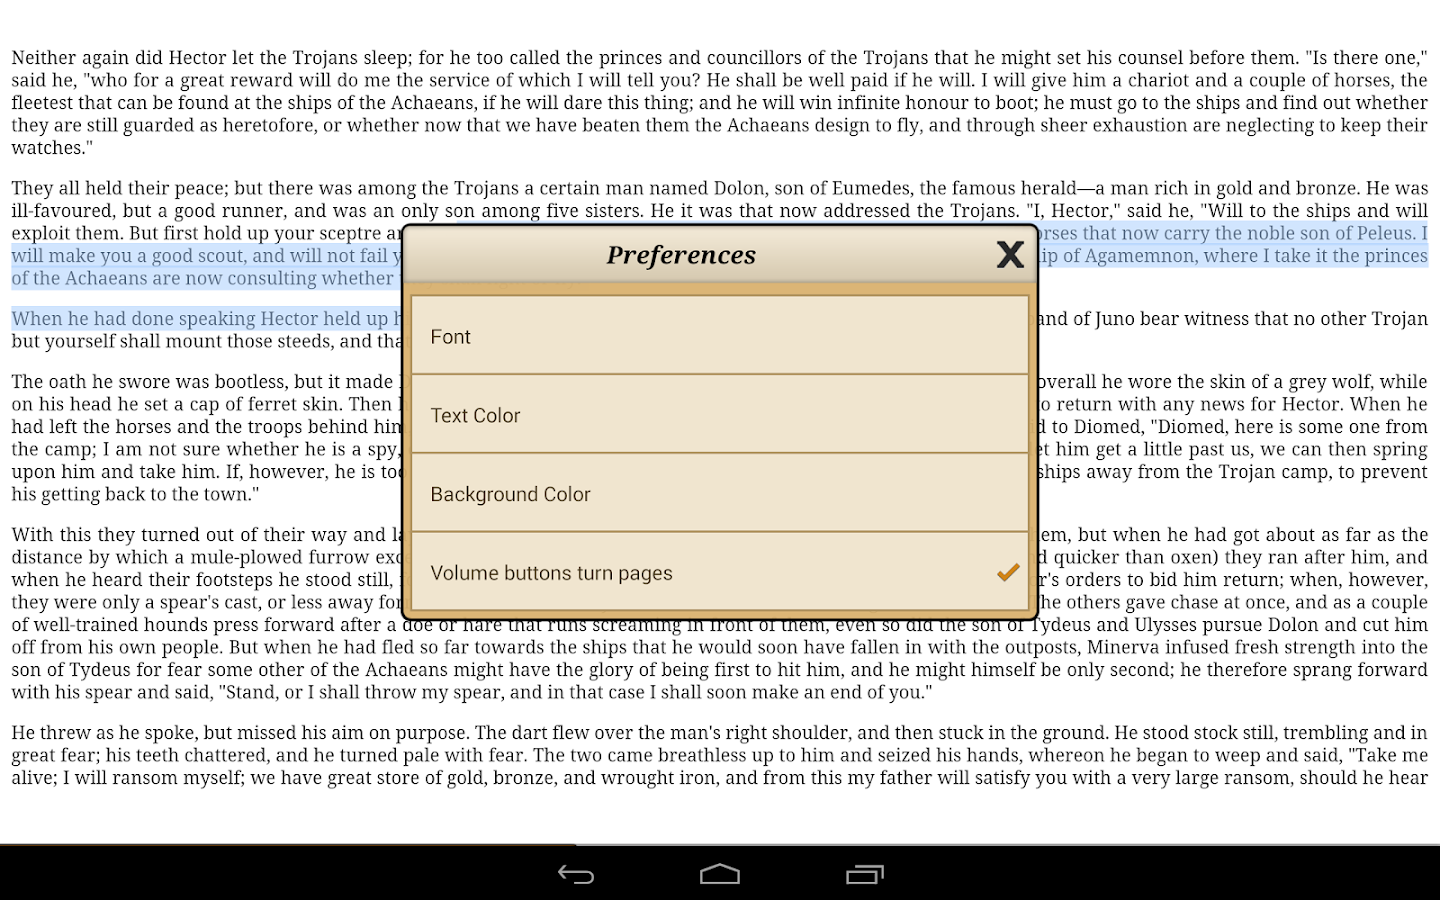 Ebook Reader Screenshot 8